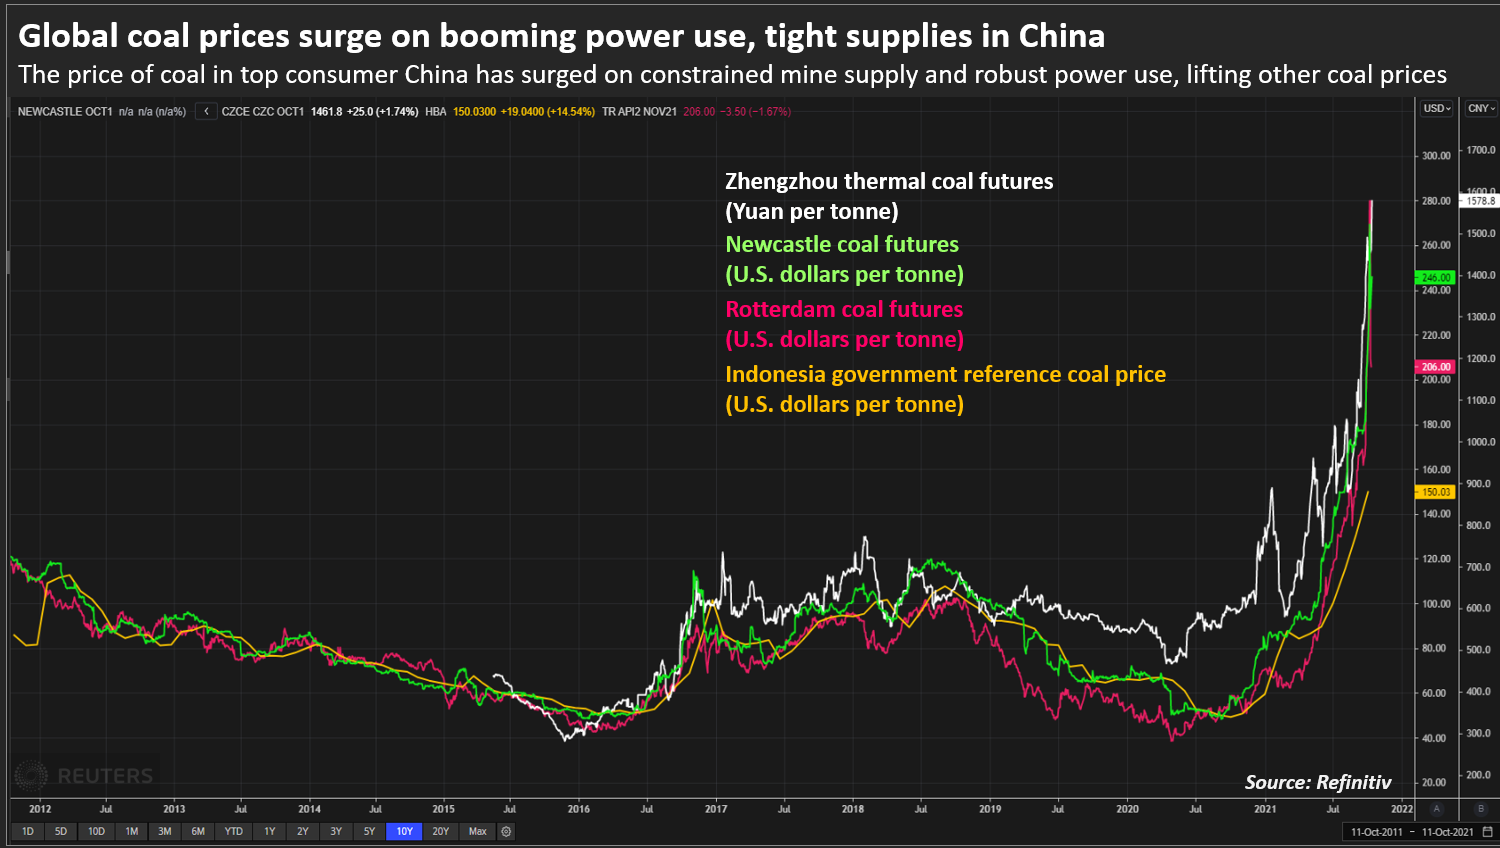 Global coal prices surge on booming power use, tight supplies in China